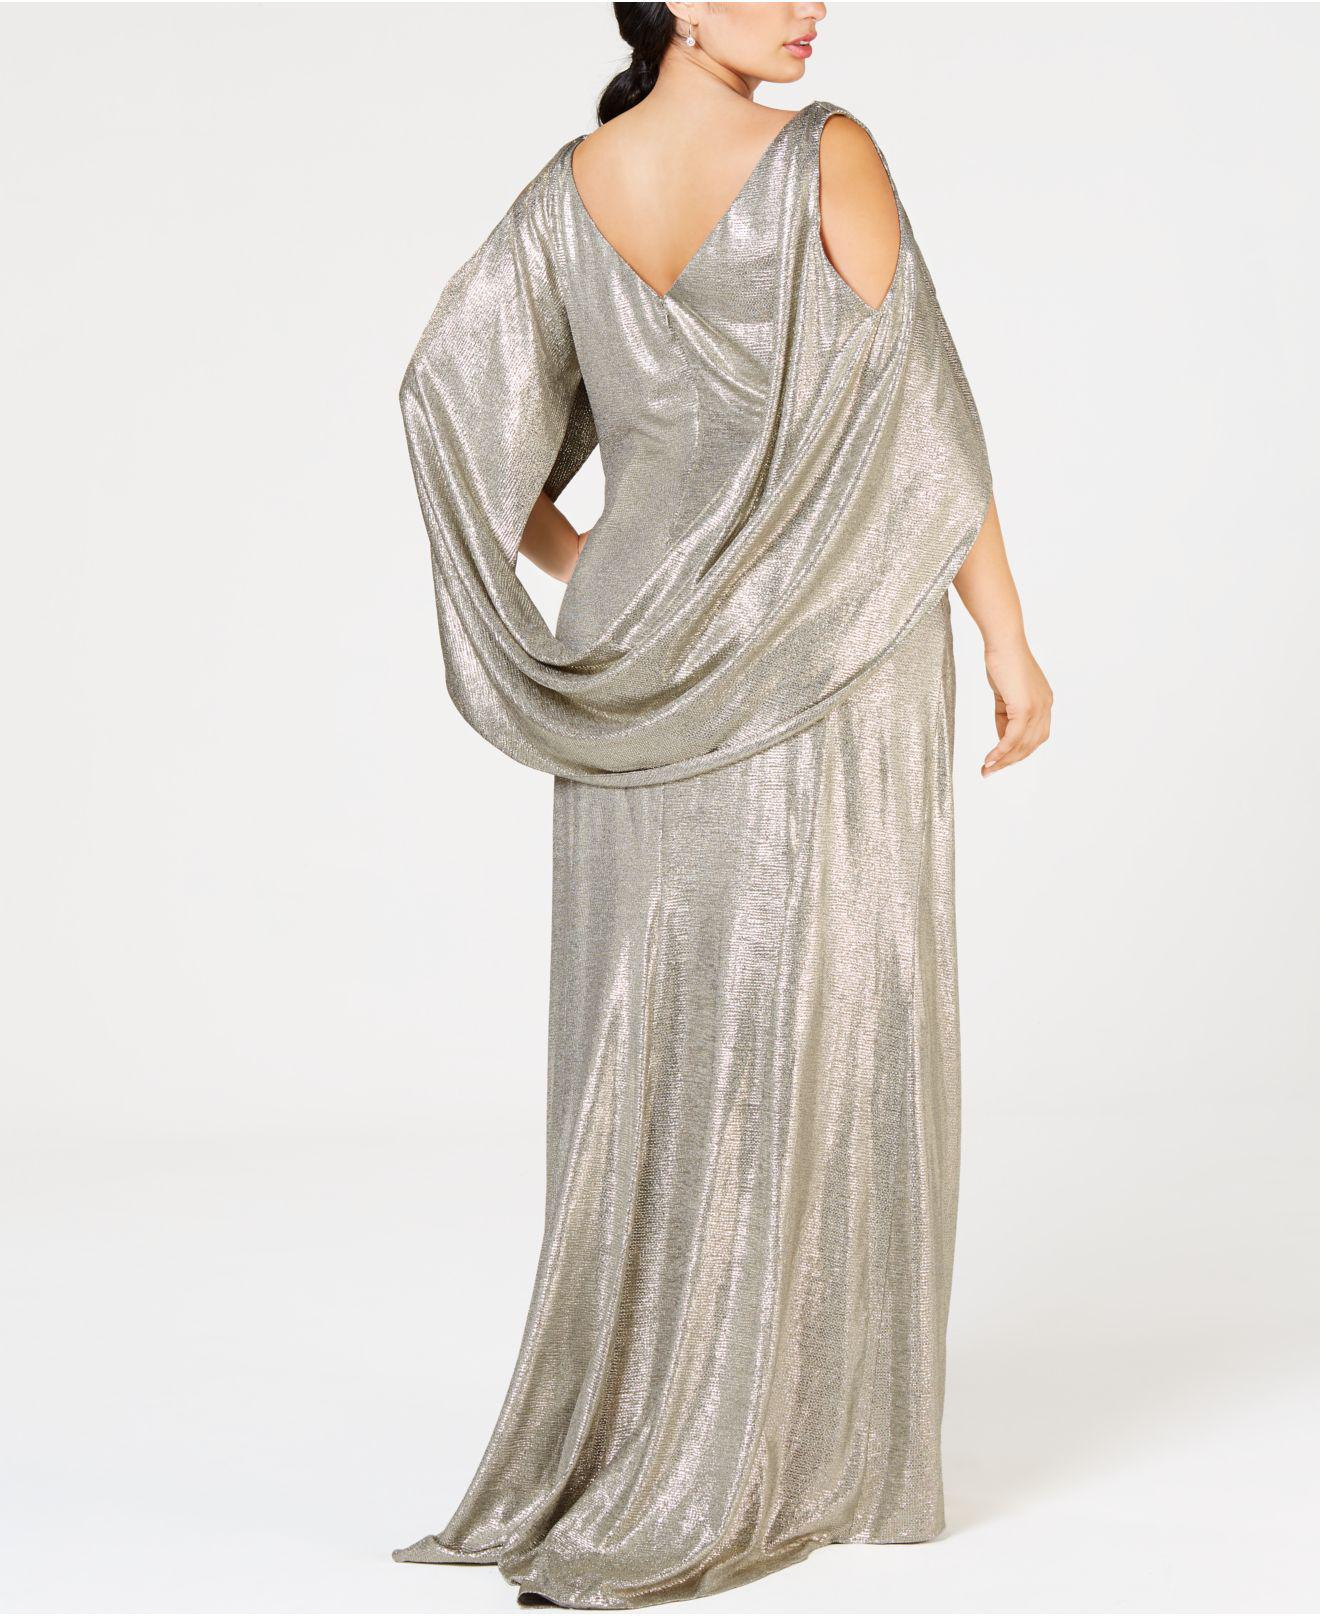 40012fc56fa Betsy   Adam Plus Size Metallic Cold-shoulder Cape Gown in Metallic - Save  40% - Lyst